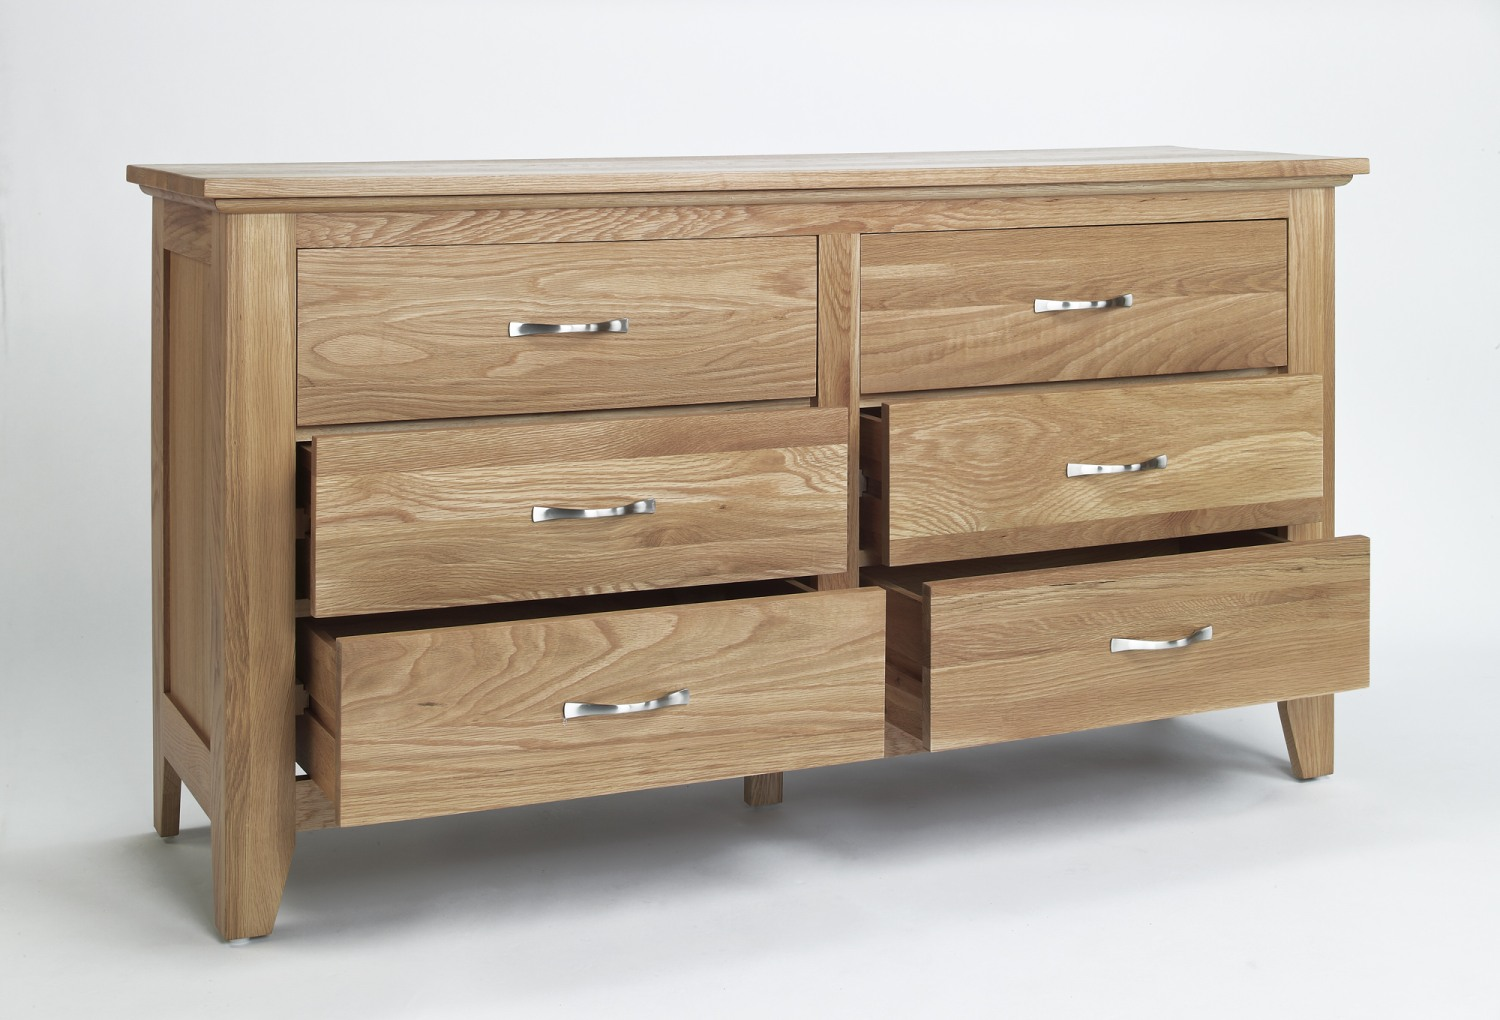 Compton Solid Oak Furniture Low Bedroom Chest Of Drawers Ebay